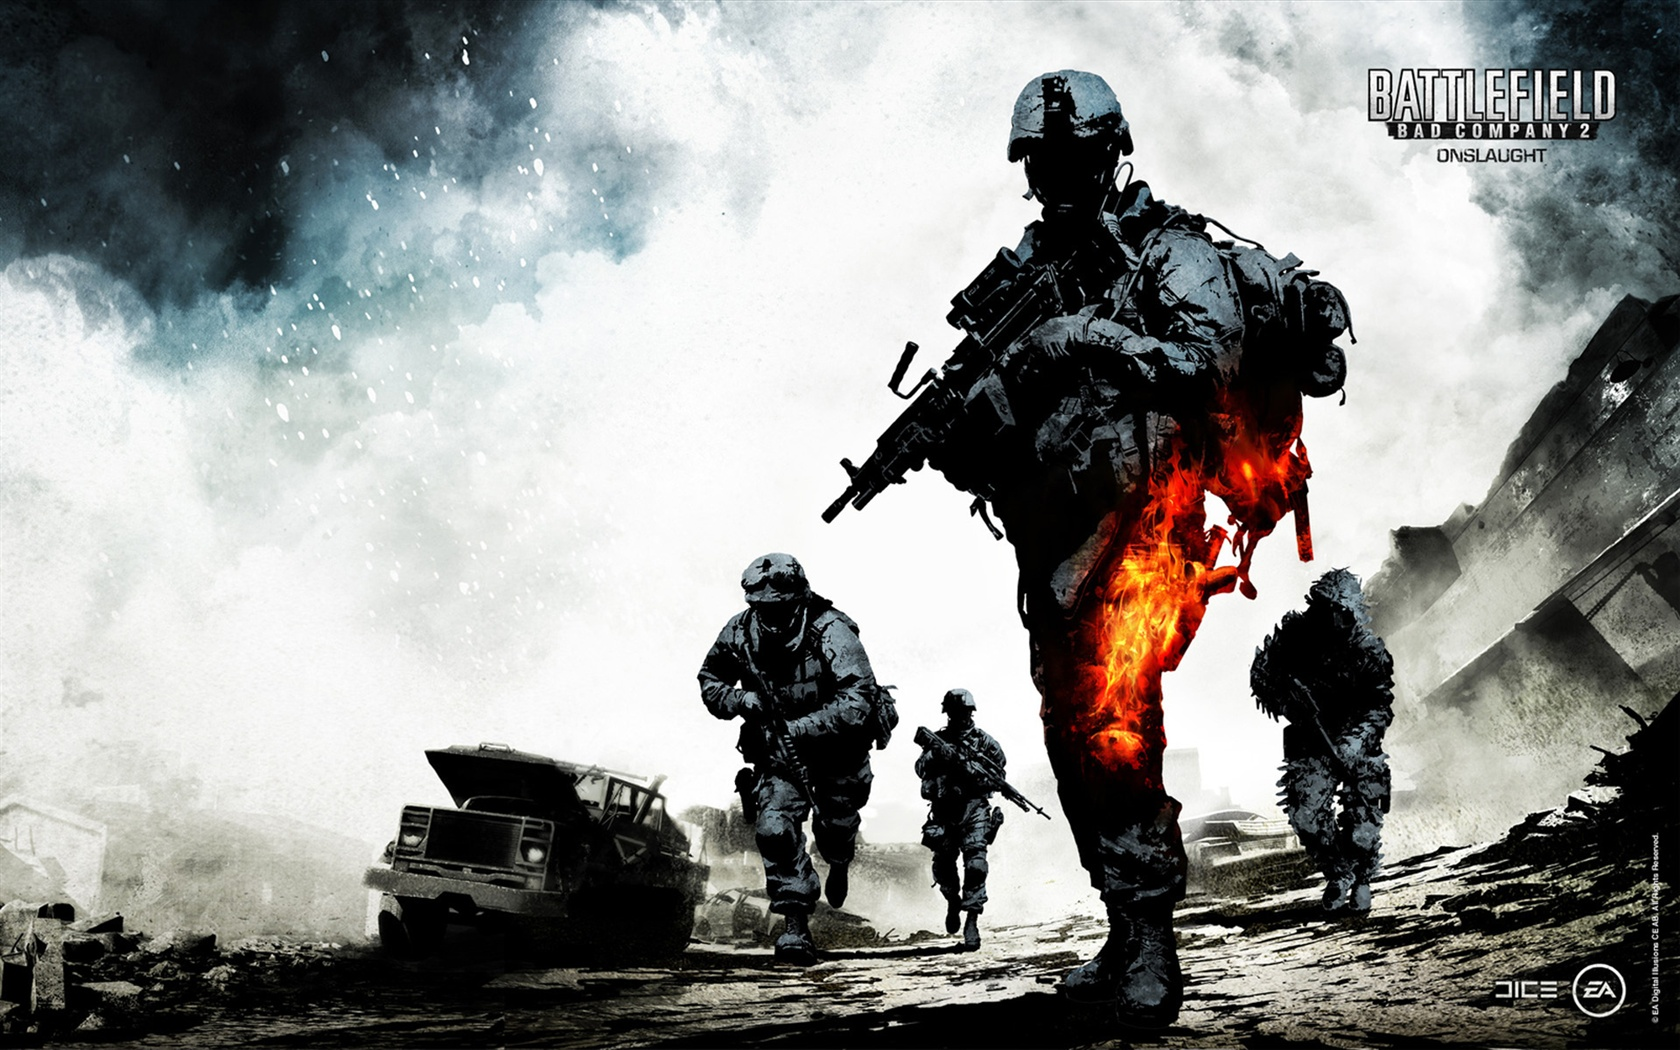 Battlefield: Bad Company 2 wallpaper - 1680x1050